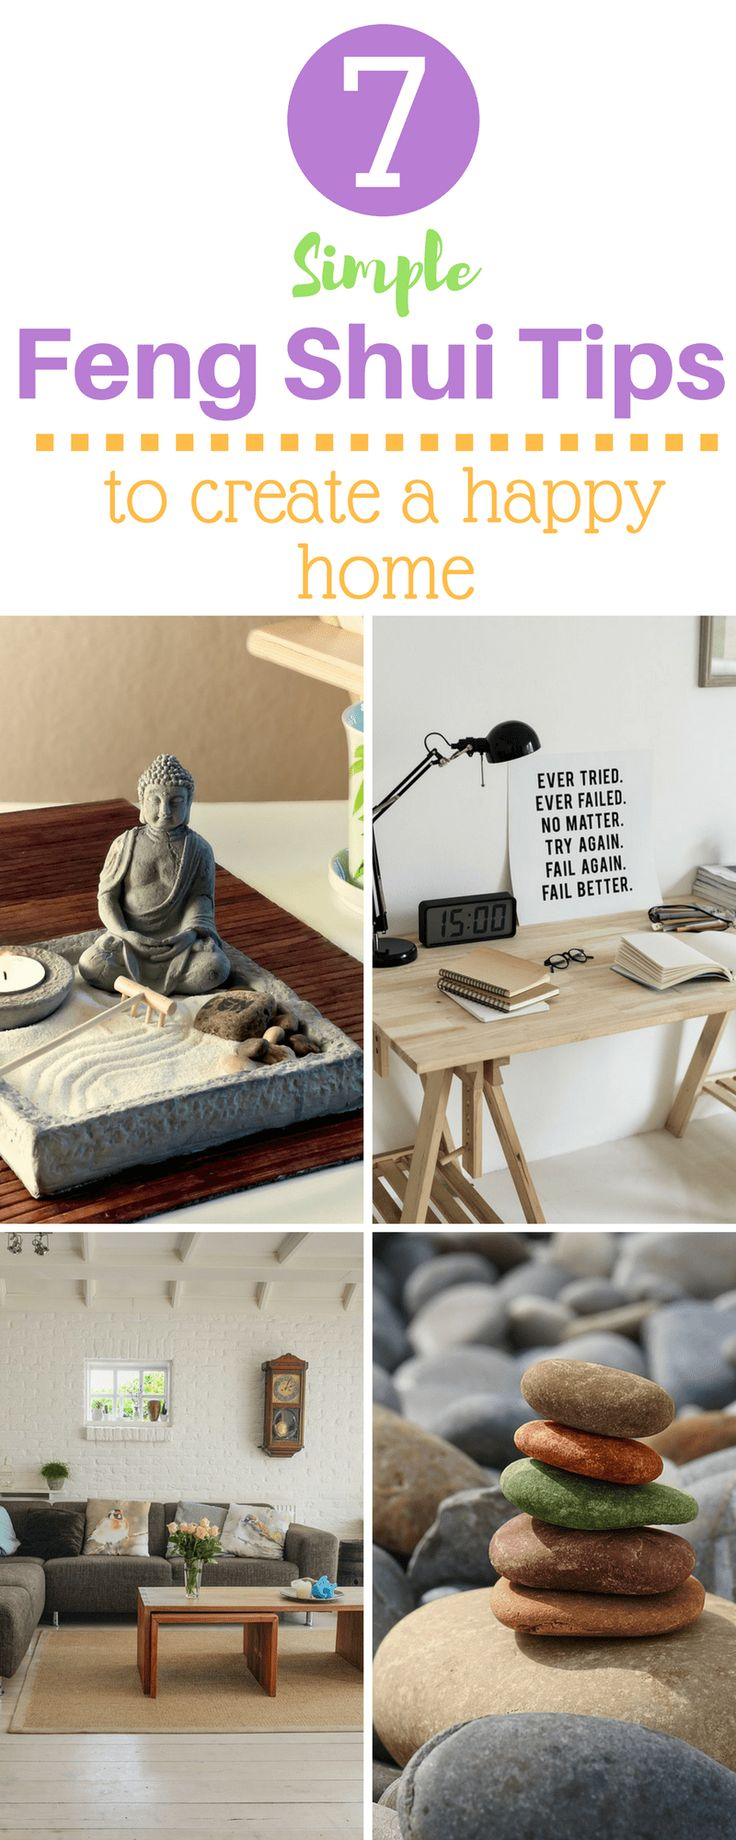 Easy Feng Shui Tips for Your Home #fengshui #homedecor #interiors